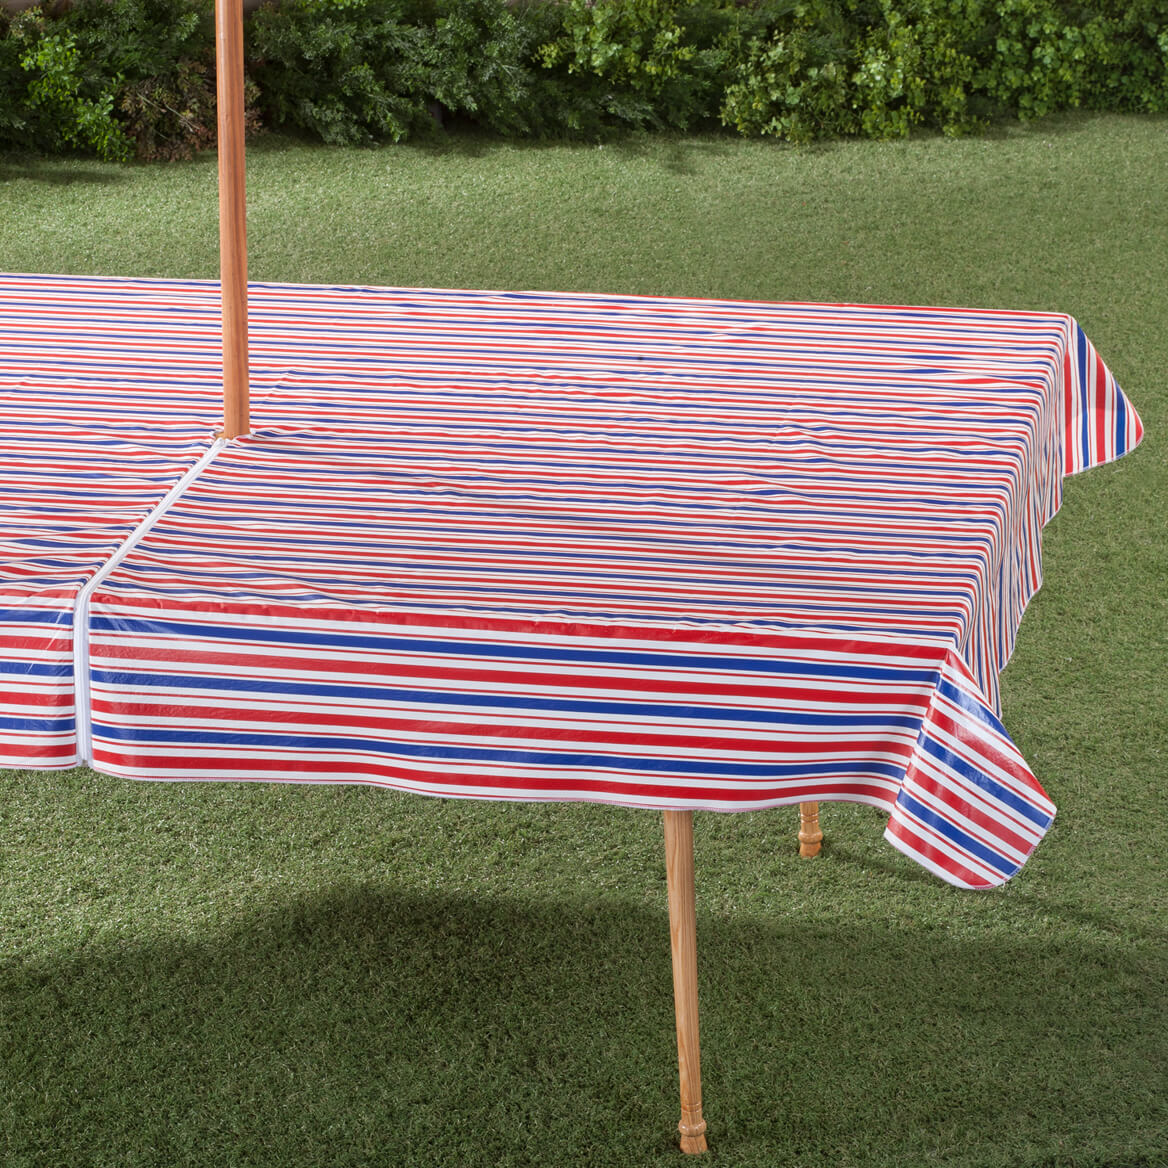 Patio Umbrella Covers With Zipper: Patriotic Zippered Umbrella Table Cover